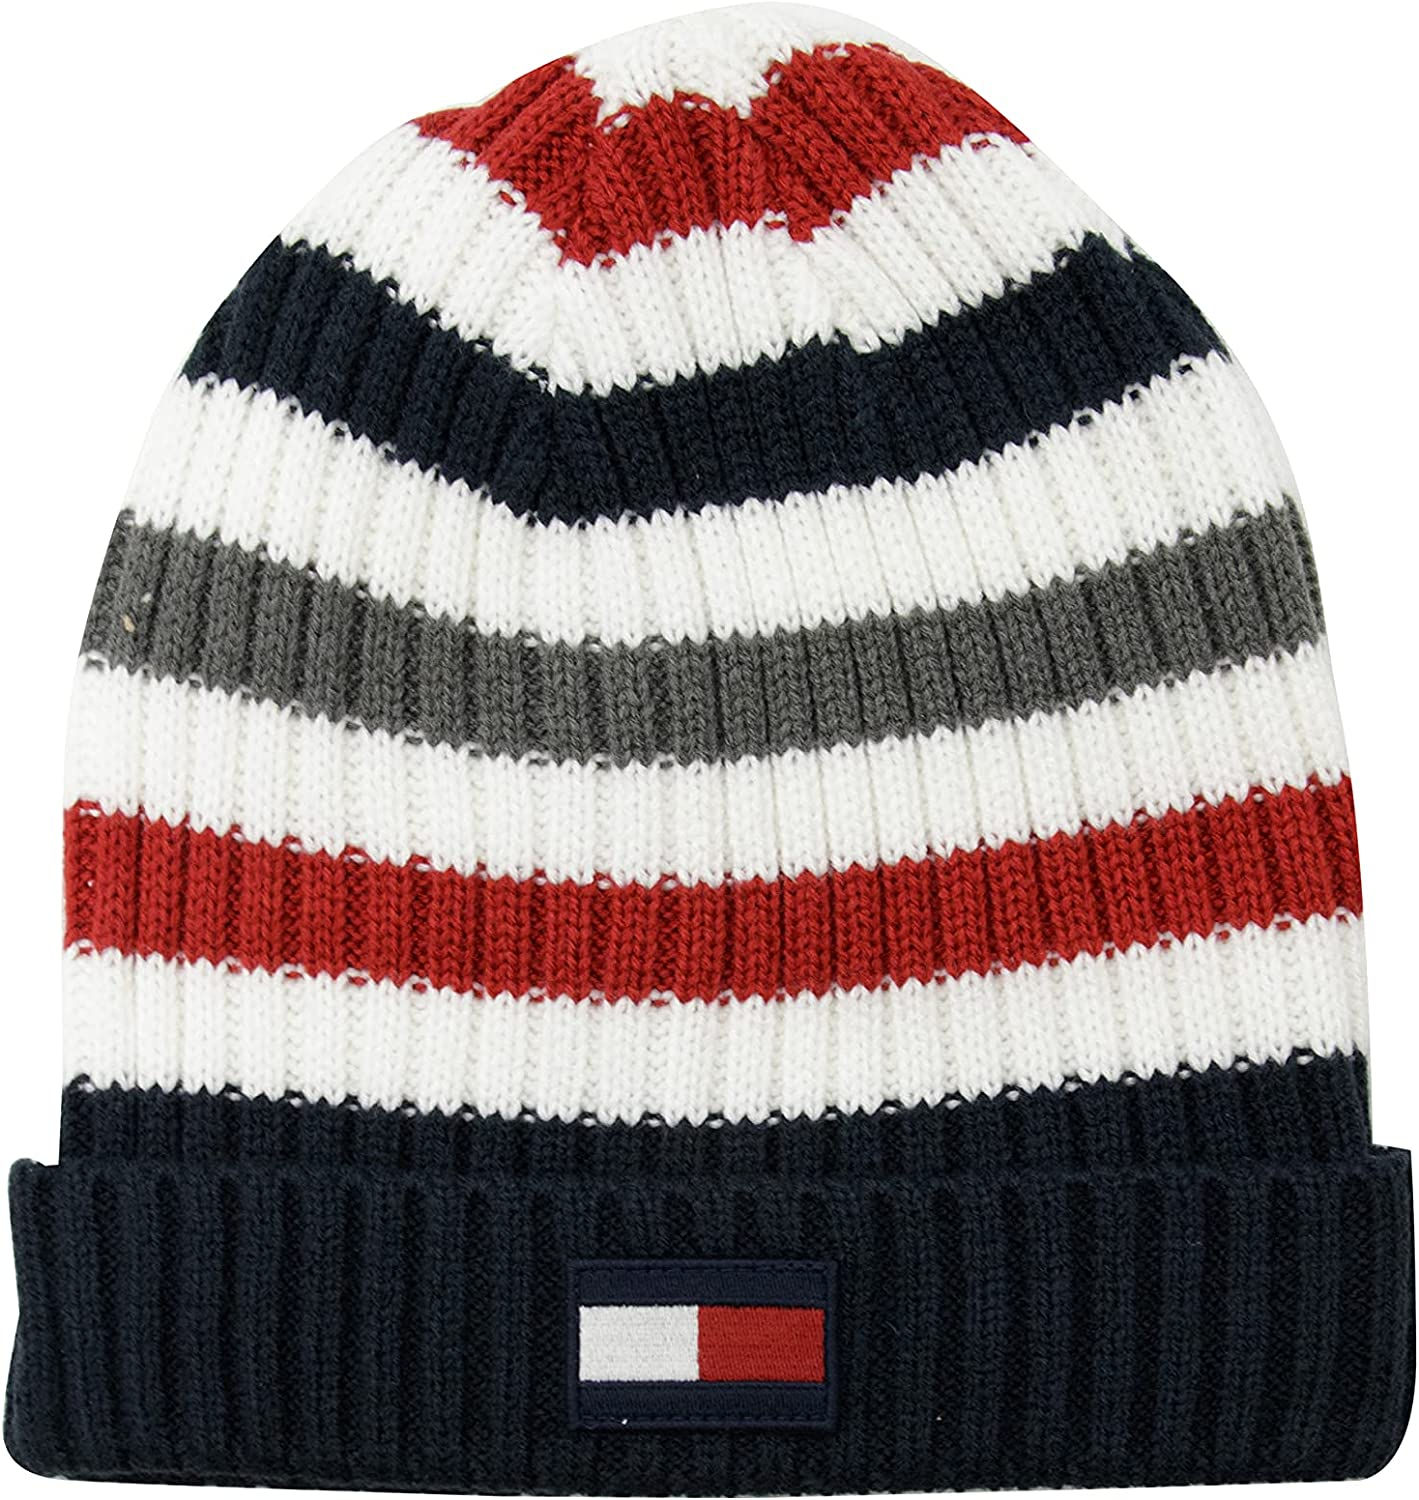 Tommy Hilfiger Men's Ribbed Cuff Hat